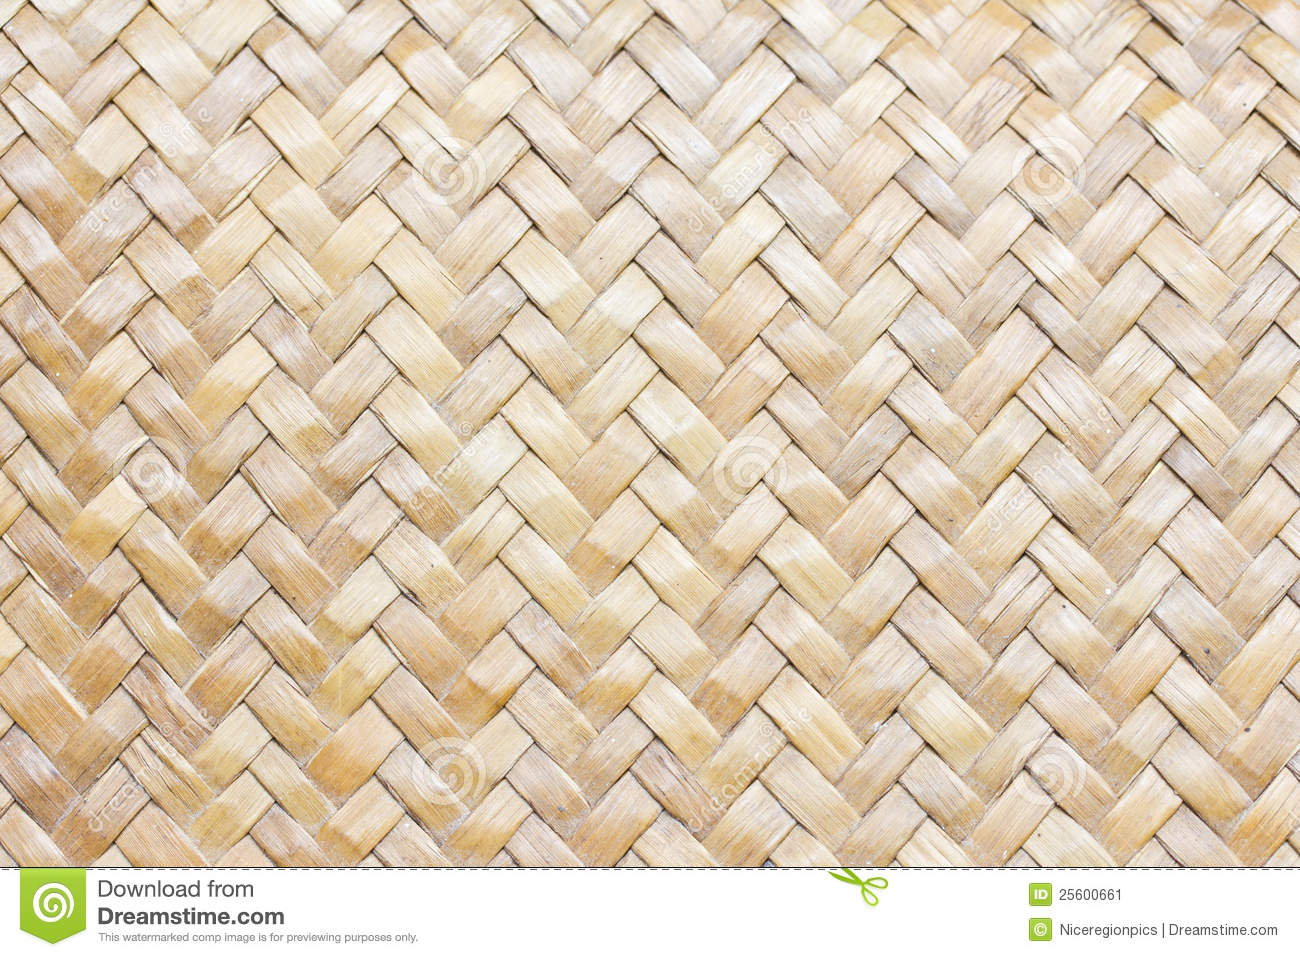 Patterns of weave bamboo stock image image 25600661 for Bamboo weaving tutorial